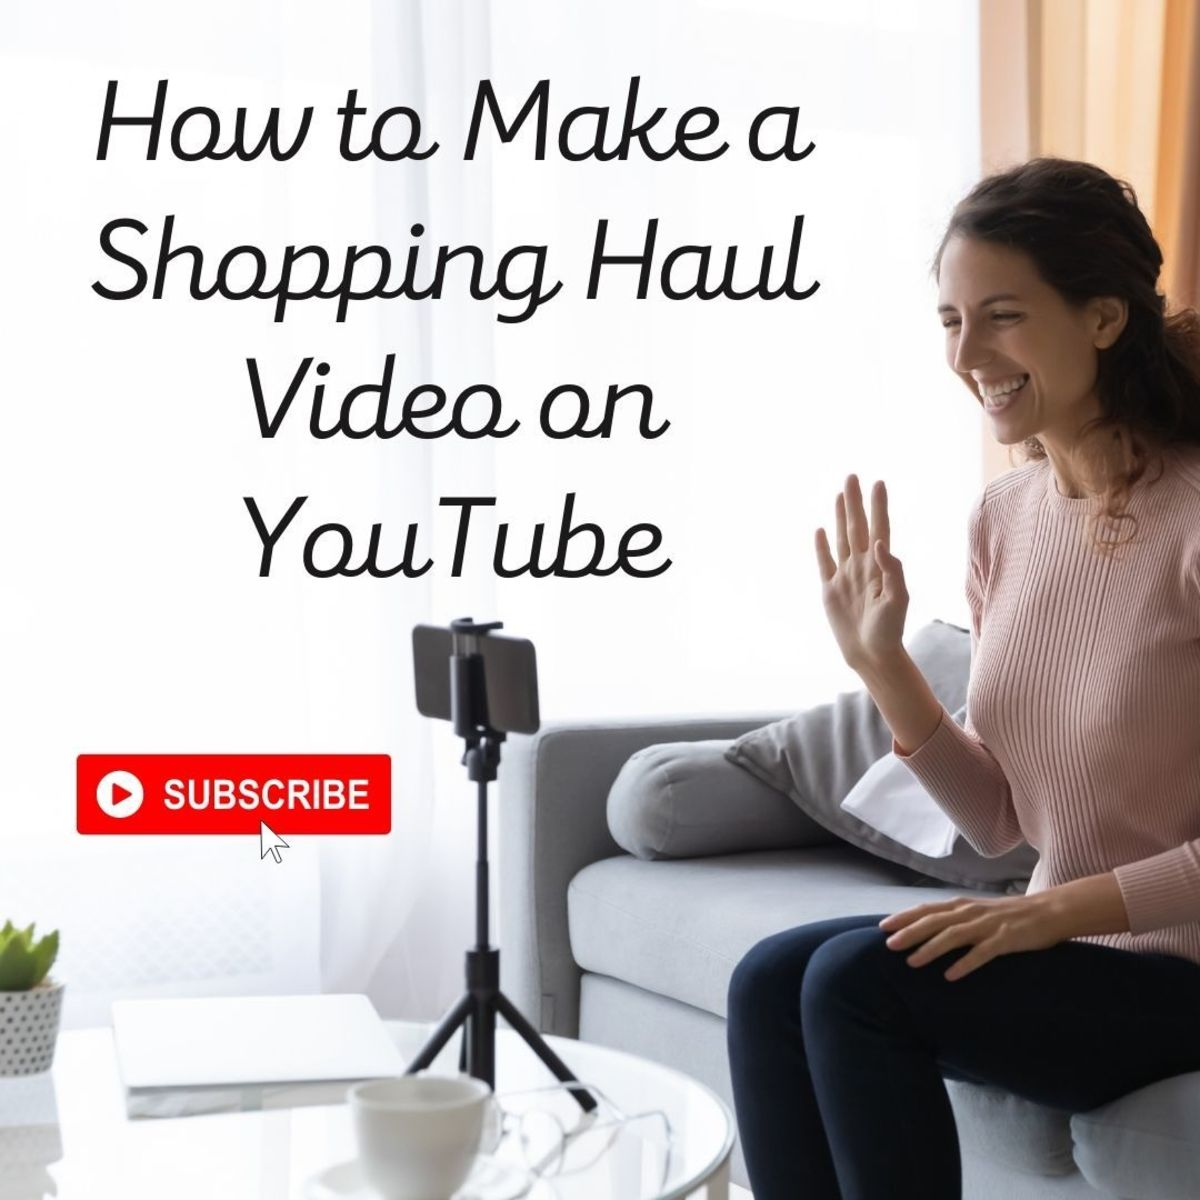 How to Make a Shopping Haul Video for YouTube